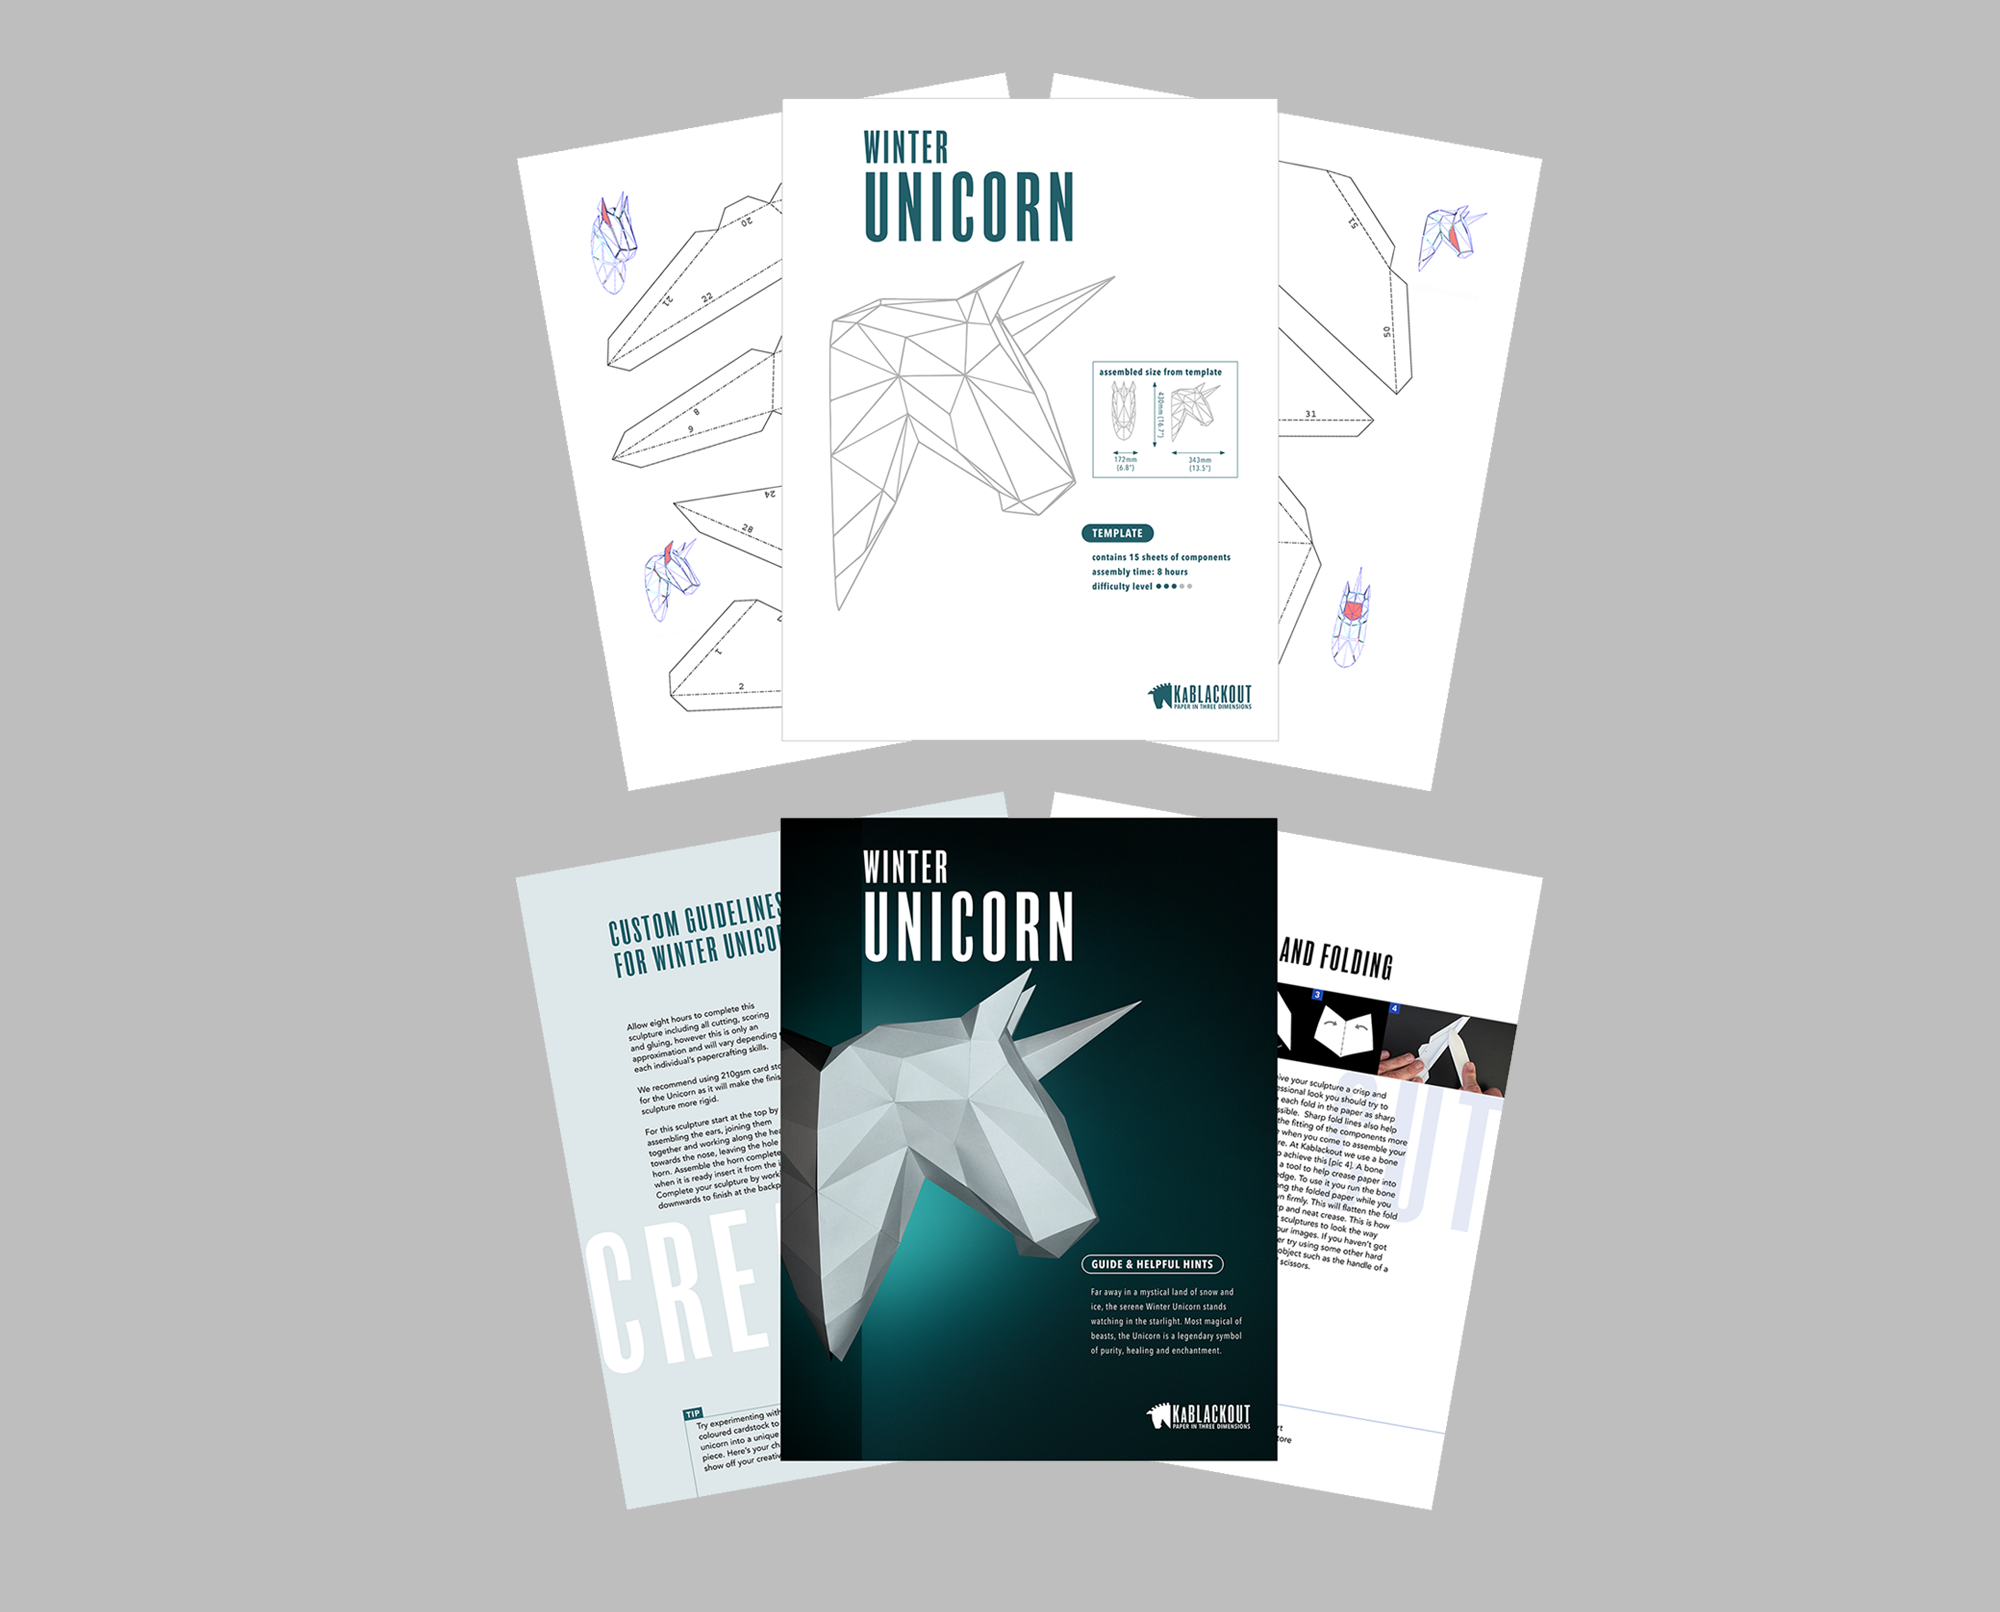 Unicorn Papercraft Template and Guide image